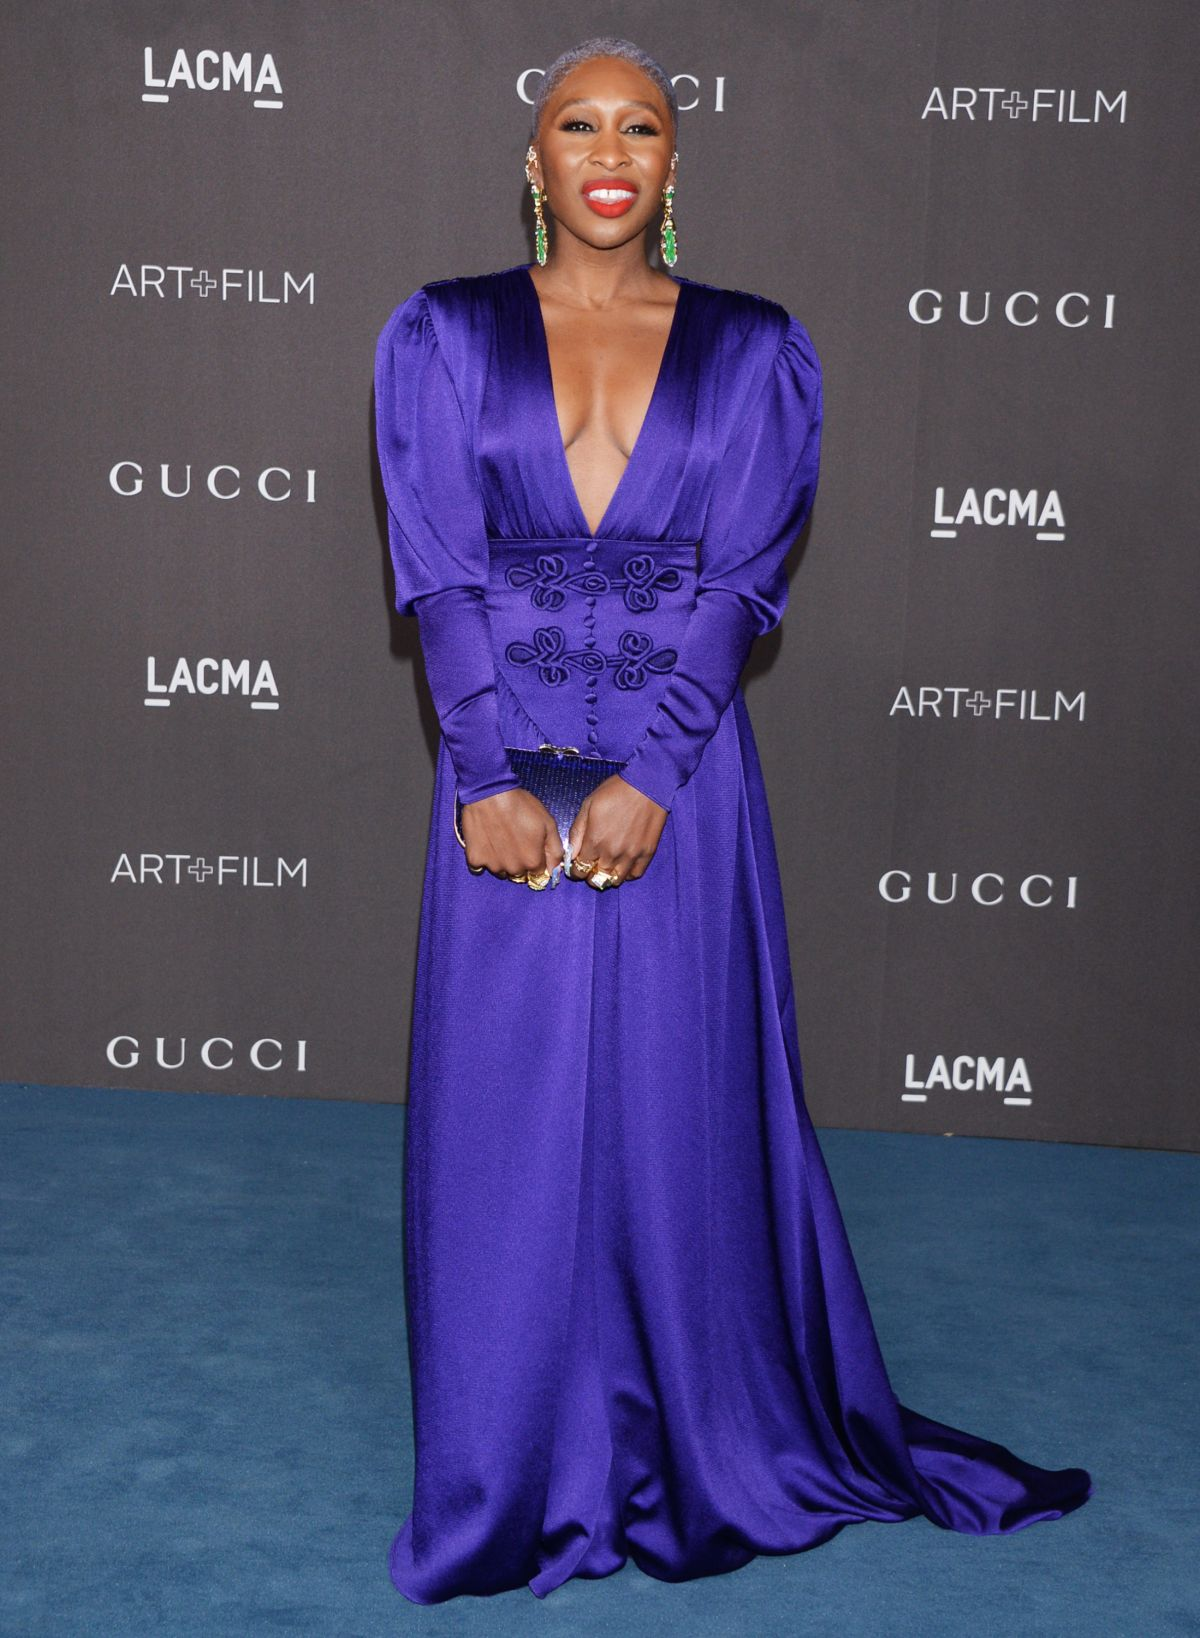 cynthia-erivo-in-gucci-2019-lacma-art-and-film-gala-in-los-angeles